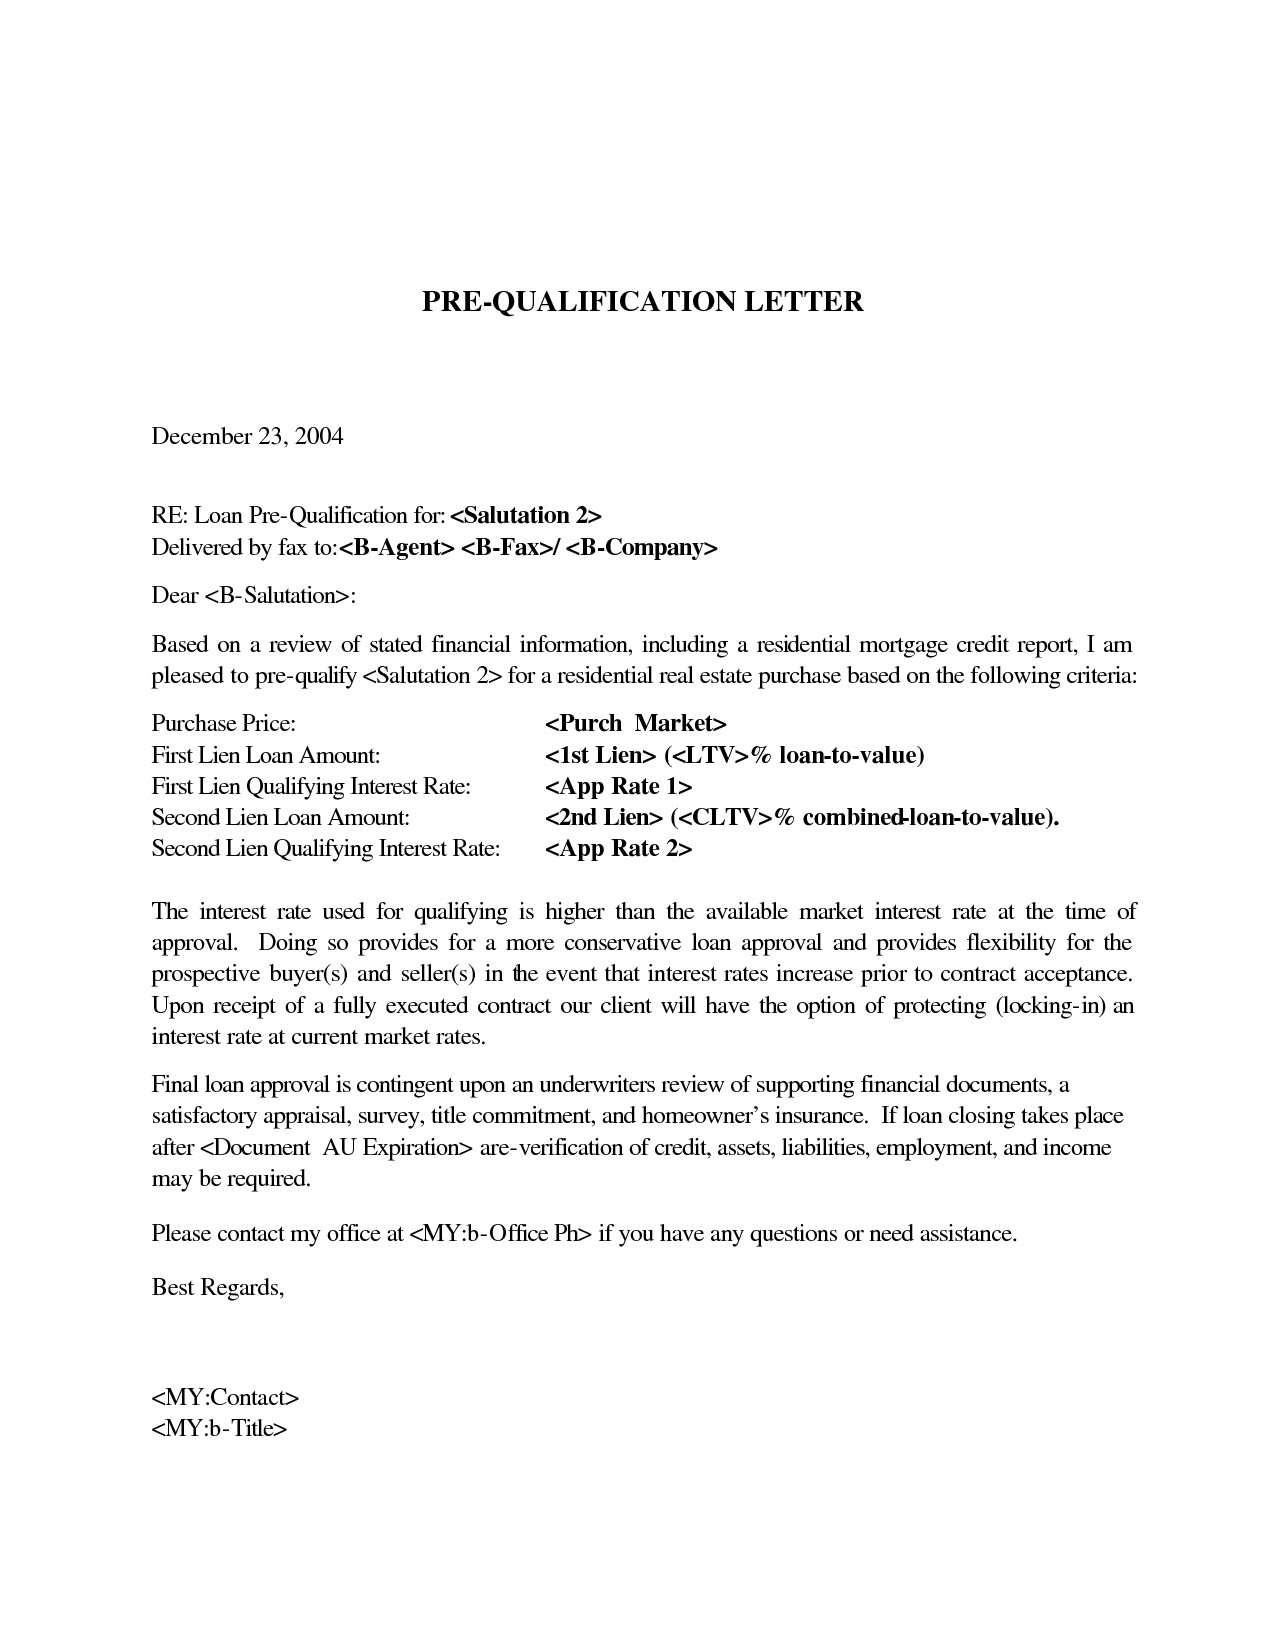 pre approval letter mortgage pre qualification letter template collection 24042 | pre approval letter sample new dental assistant qualifications of mortgage pre qualification letter template